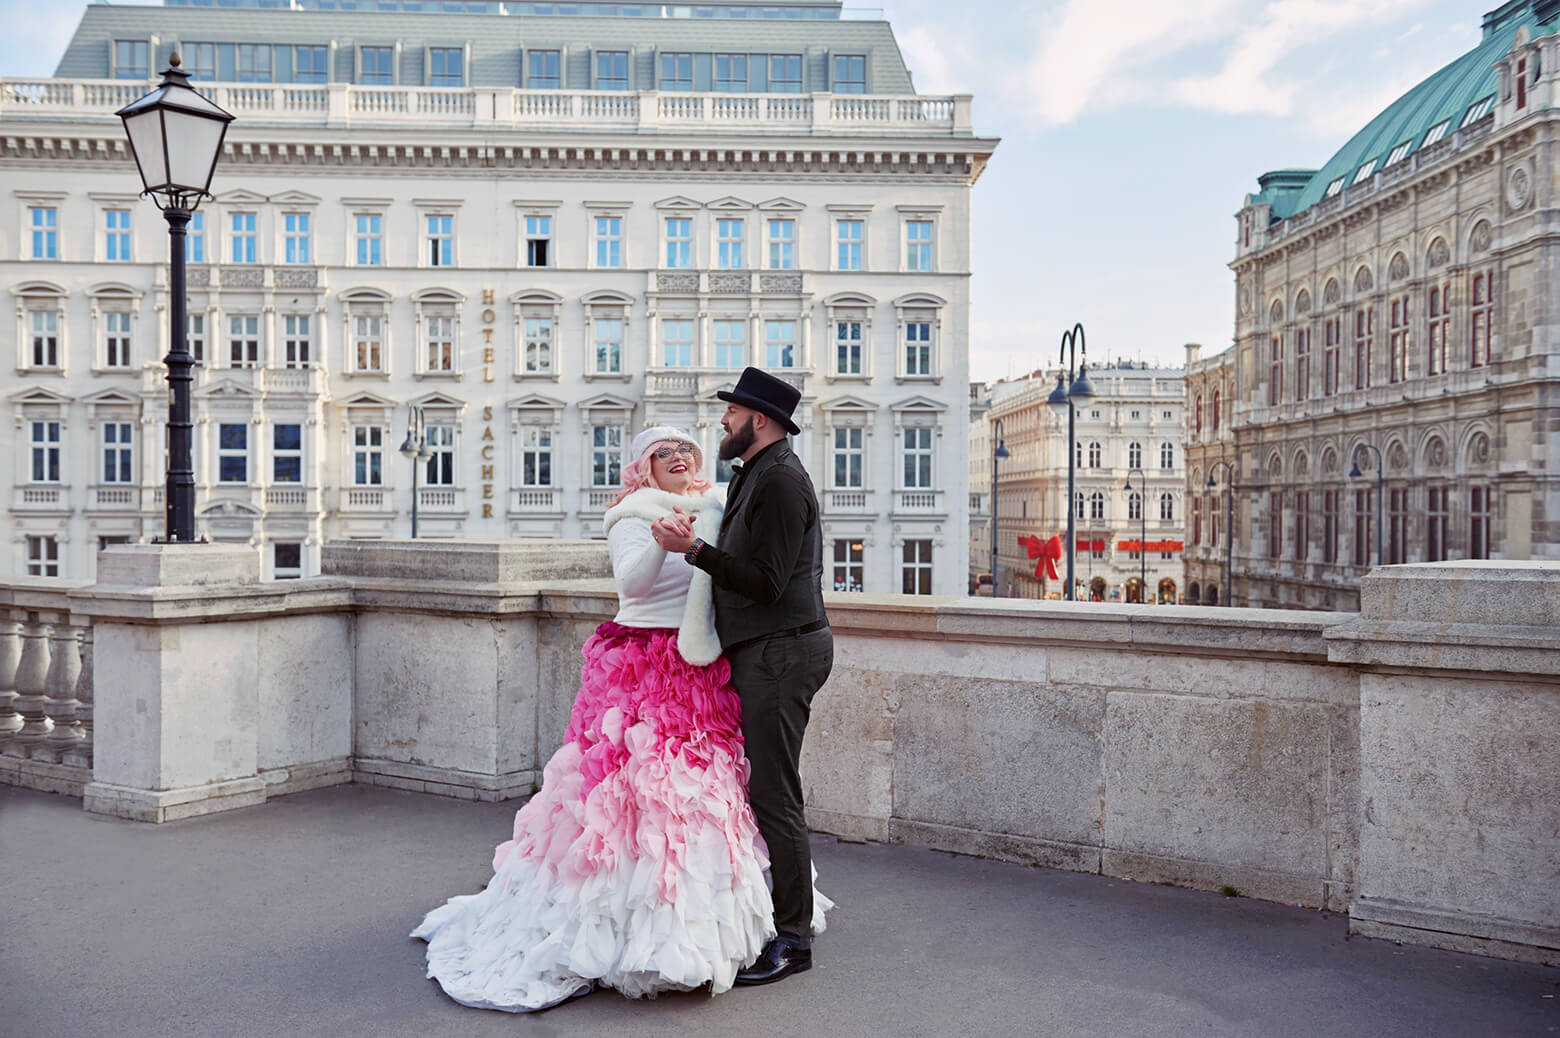 A Viennese Love Story - from Vienna with love, a beautiful elopement in Vienna, Austria